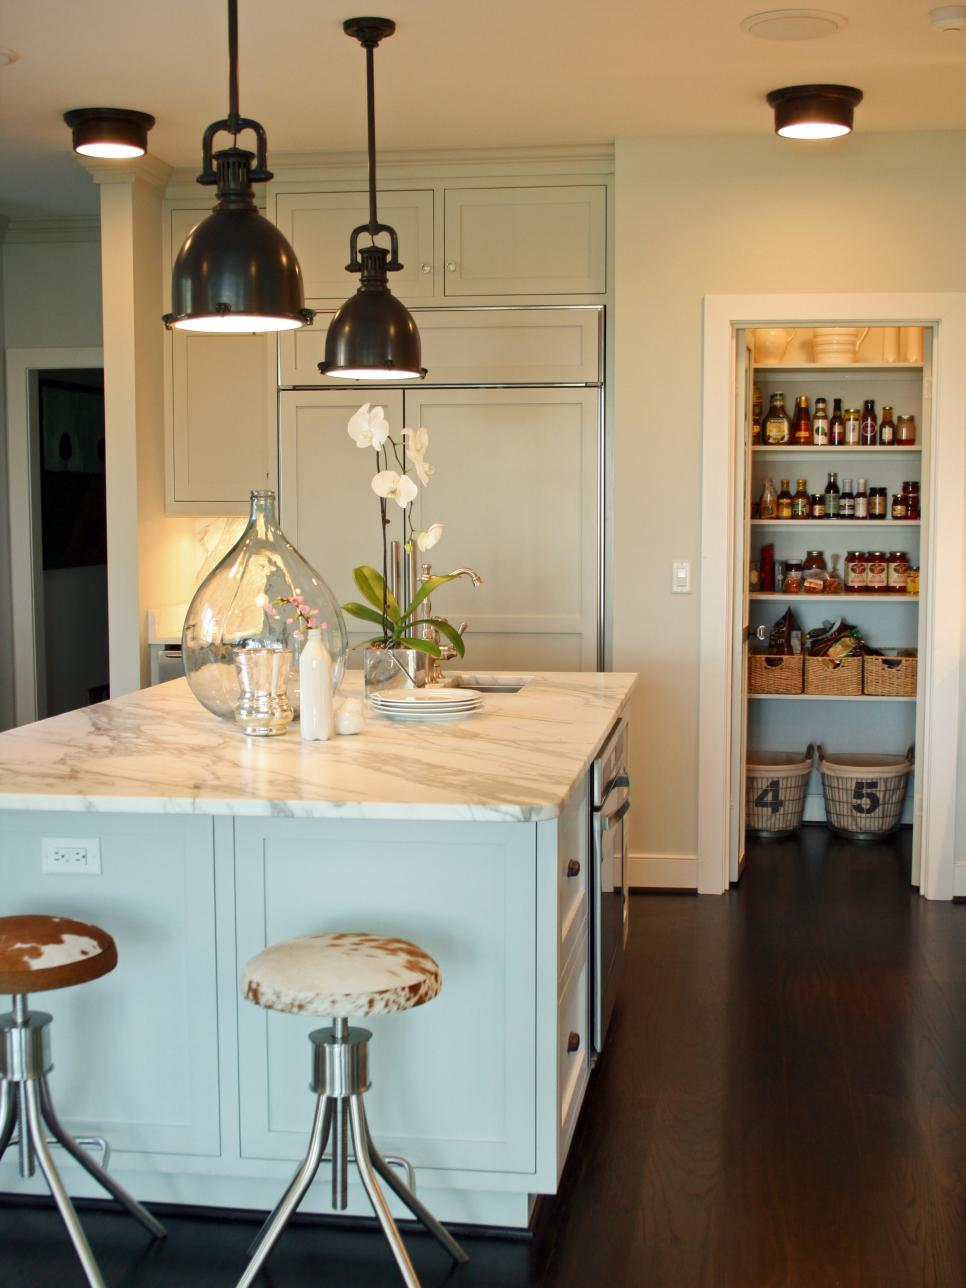 Lighting Options For Kitchens Kitchen Lighting Design Tips Hgtv